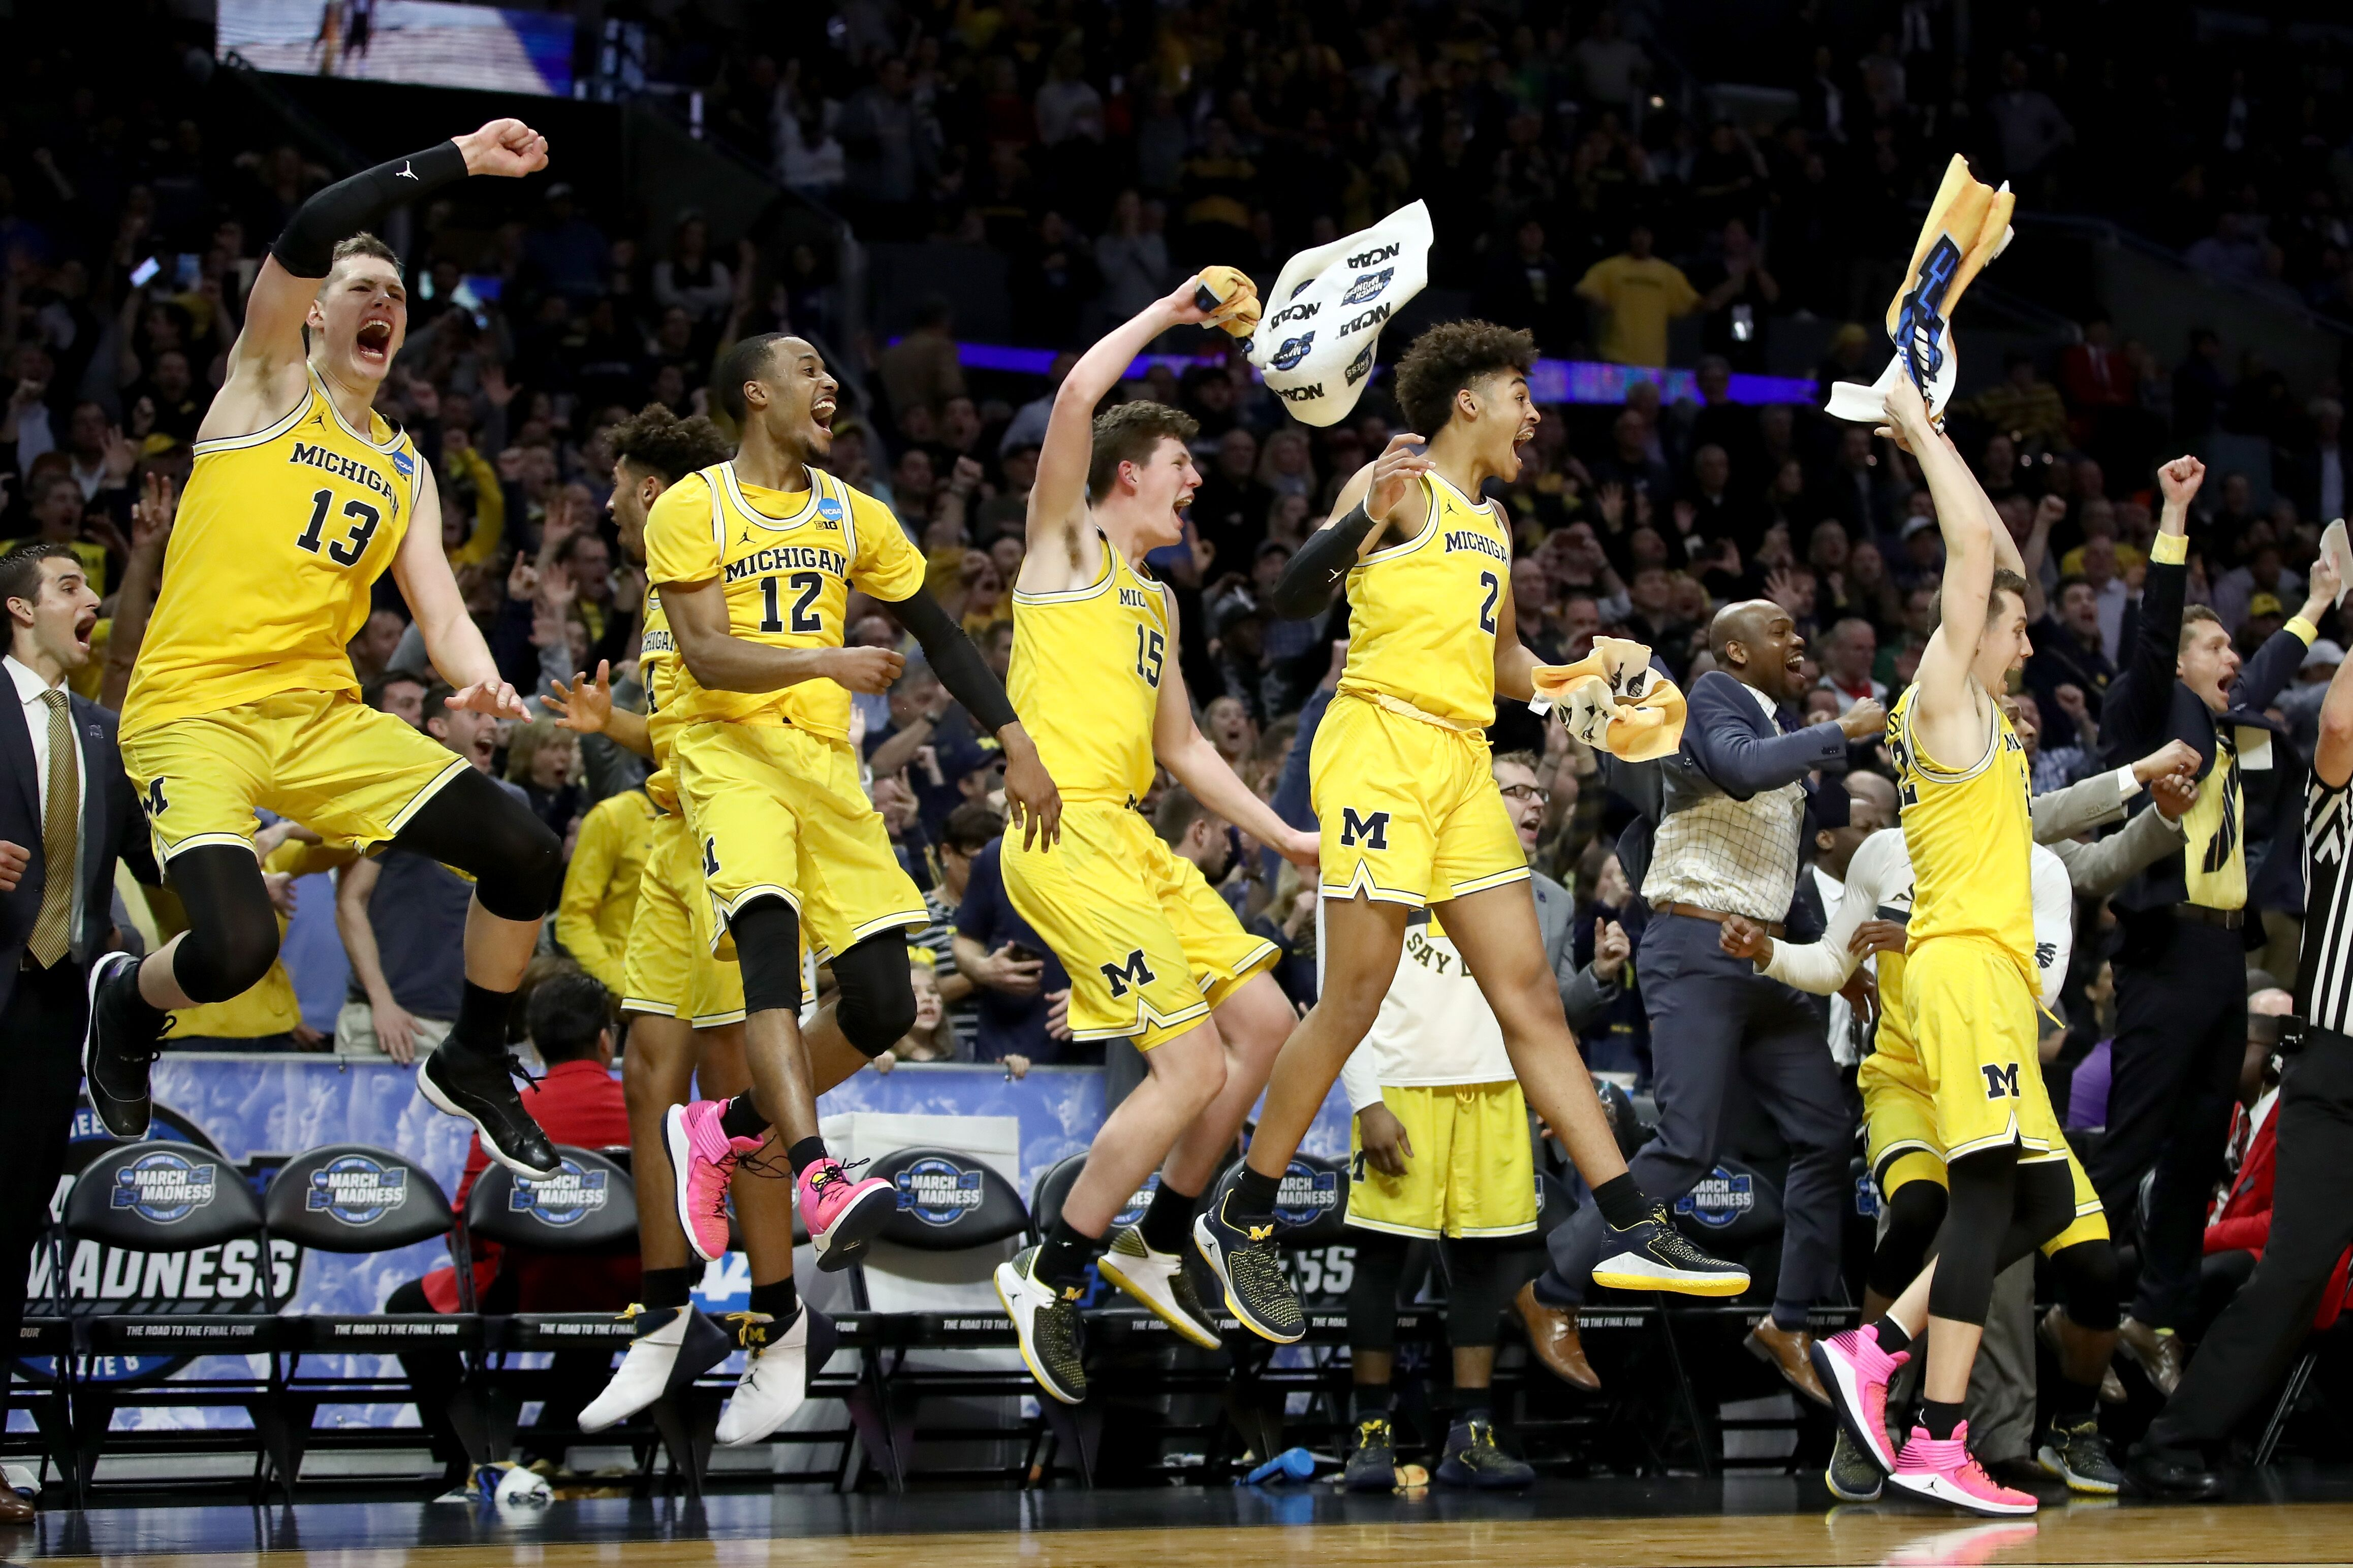 Michigan Basketball 3 things we learned from win overMichigan Basketball